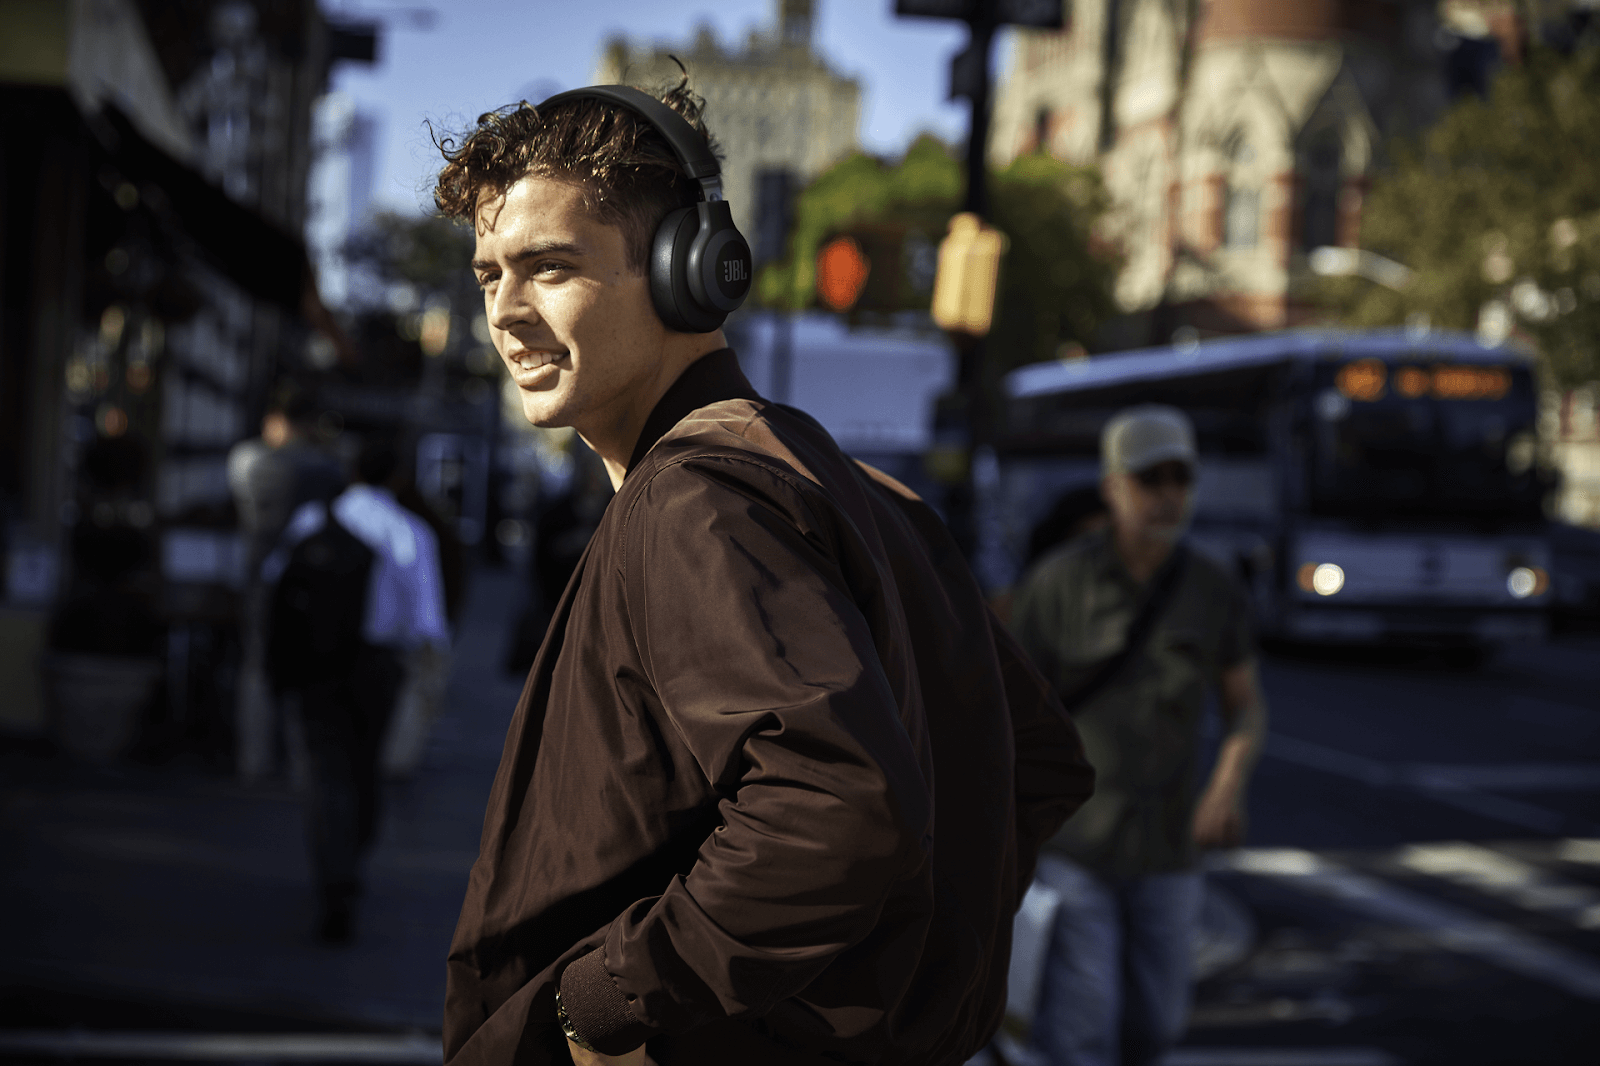 man walking down street wearing JBL wireless over the ear headphones